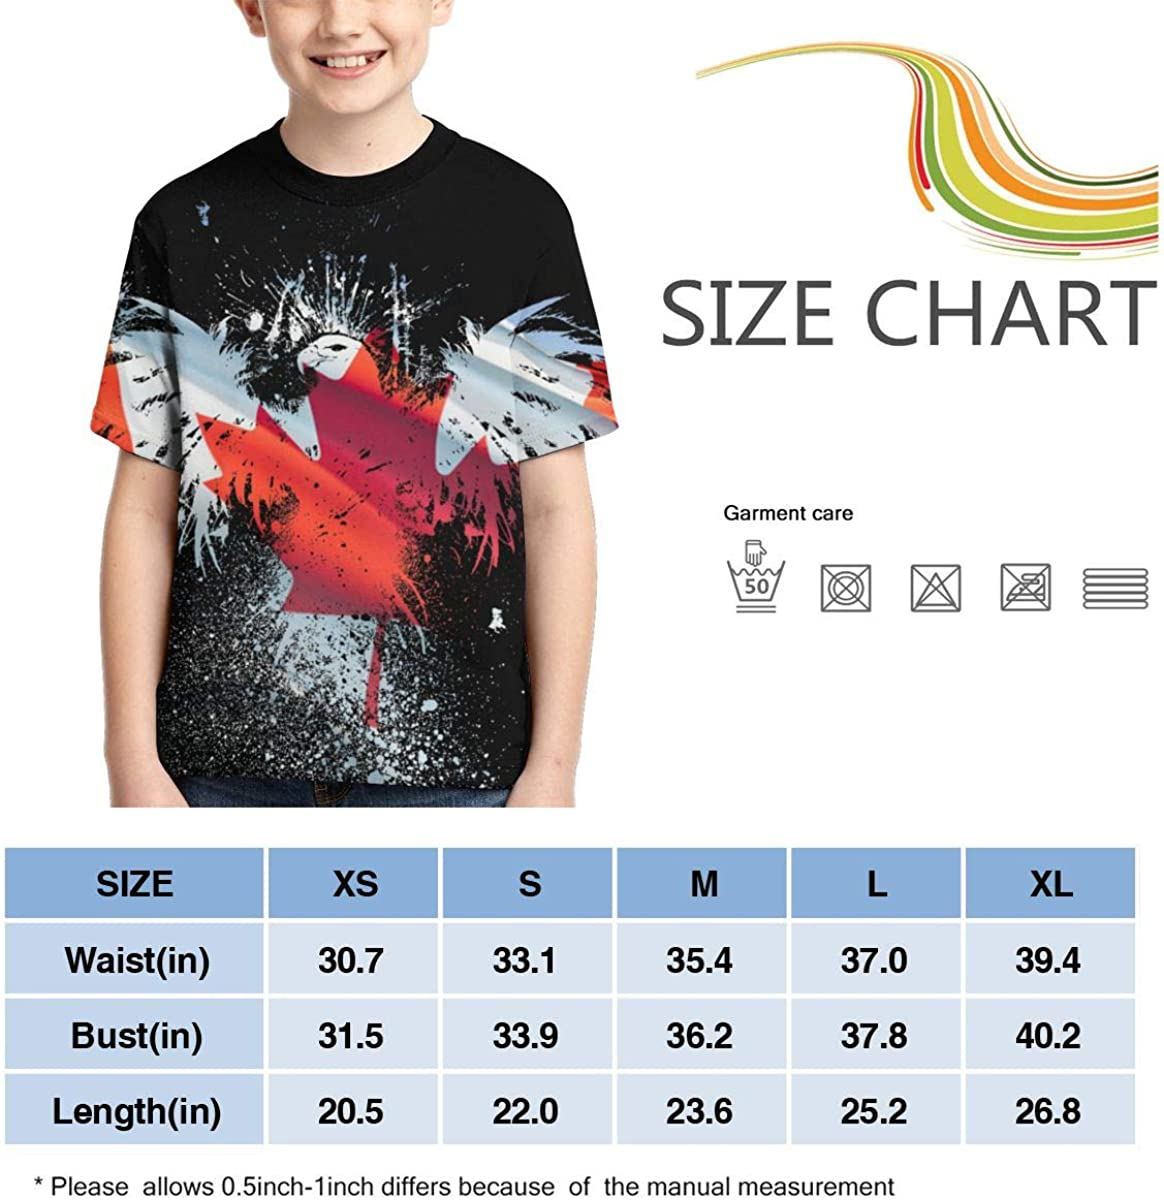 BIAN-64 Youth American Flag Eagle Casual 3D Pattern Printed Short Sleeve T-Shirts Top Tees